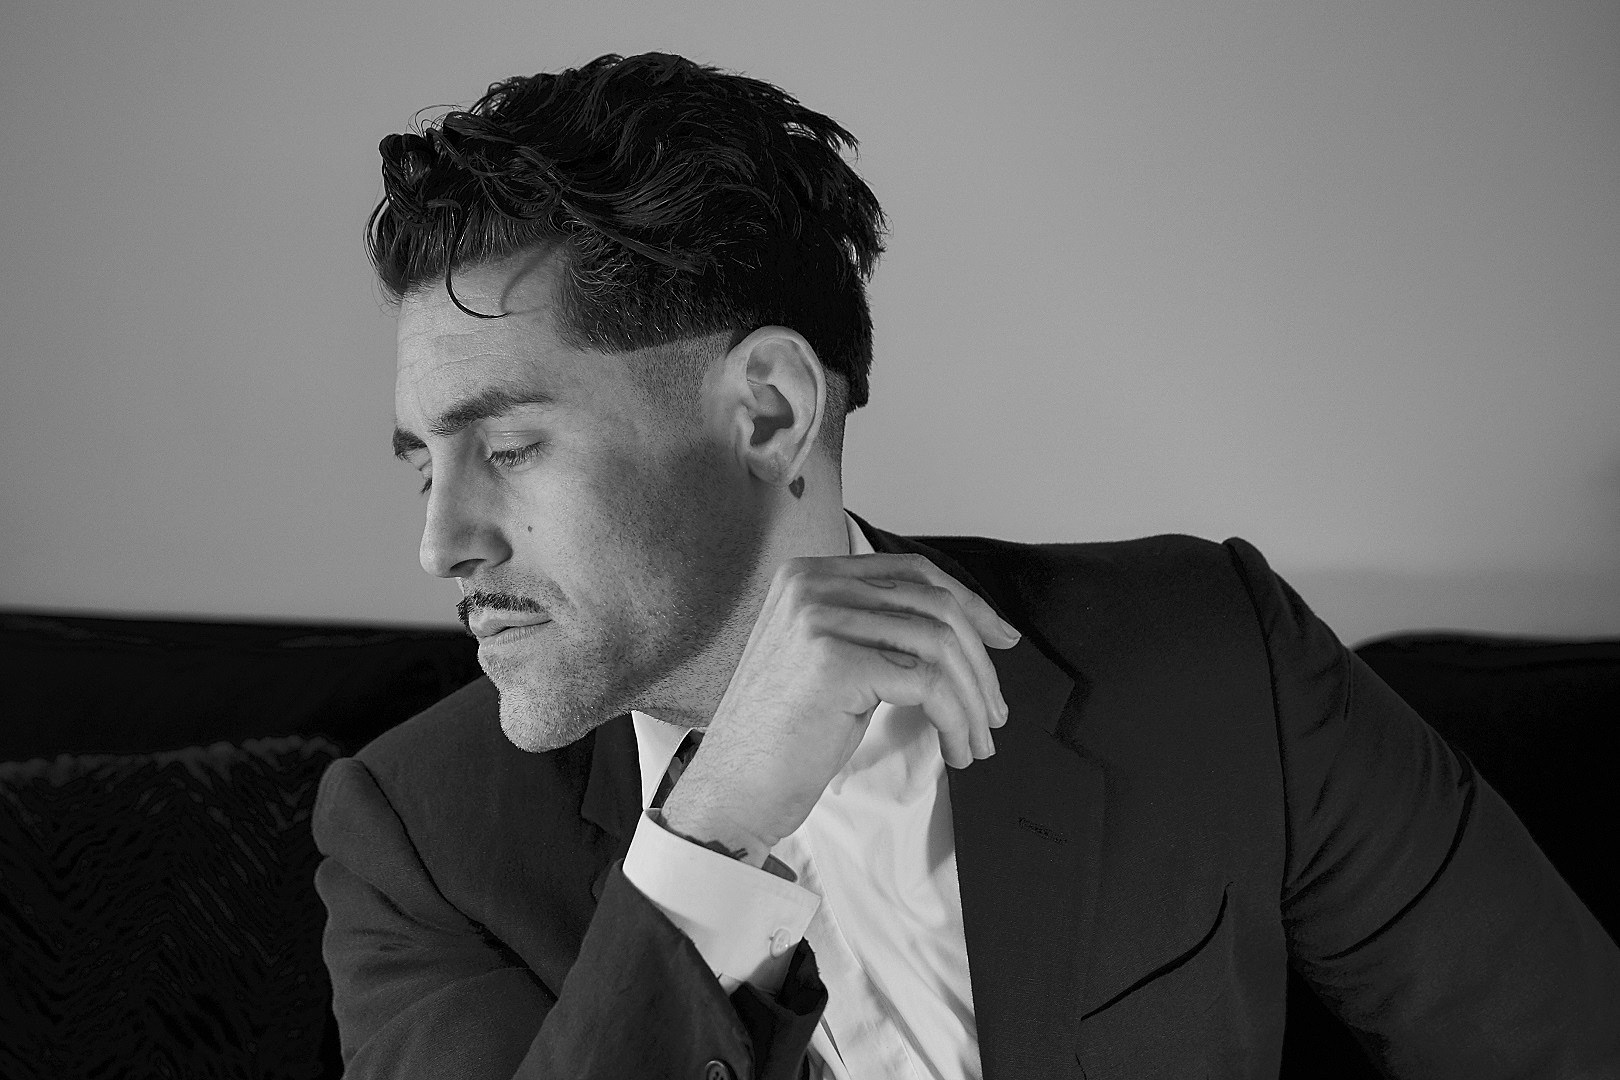 AFI Frontman Davey Havok to Release Second Novel 'Love Fast Los Angeles' in February 2018